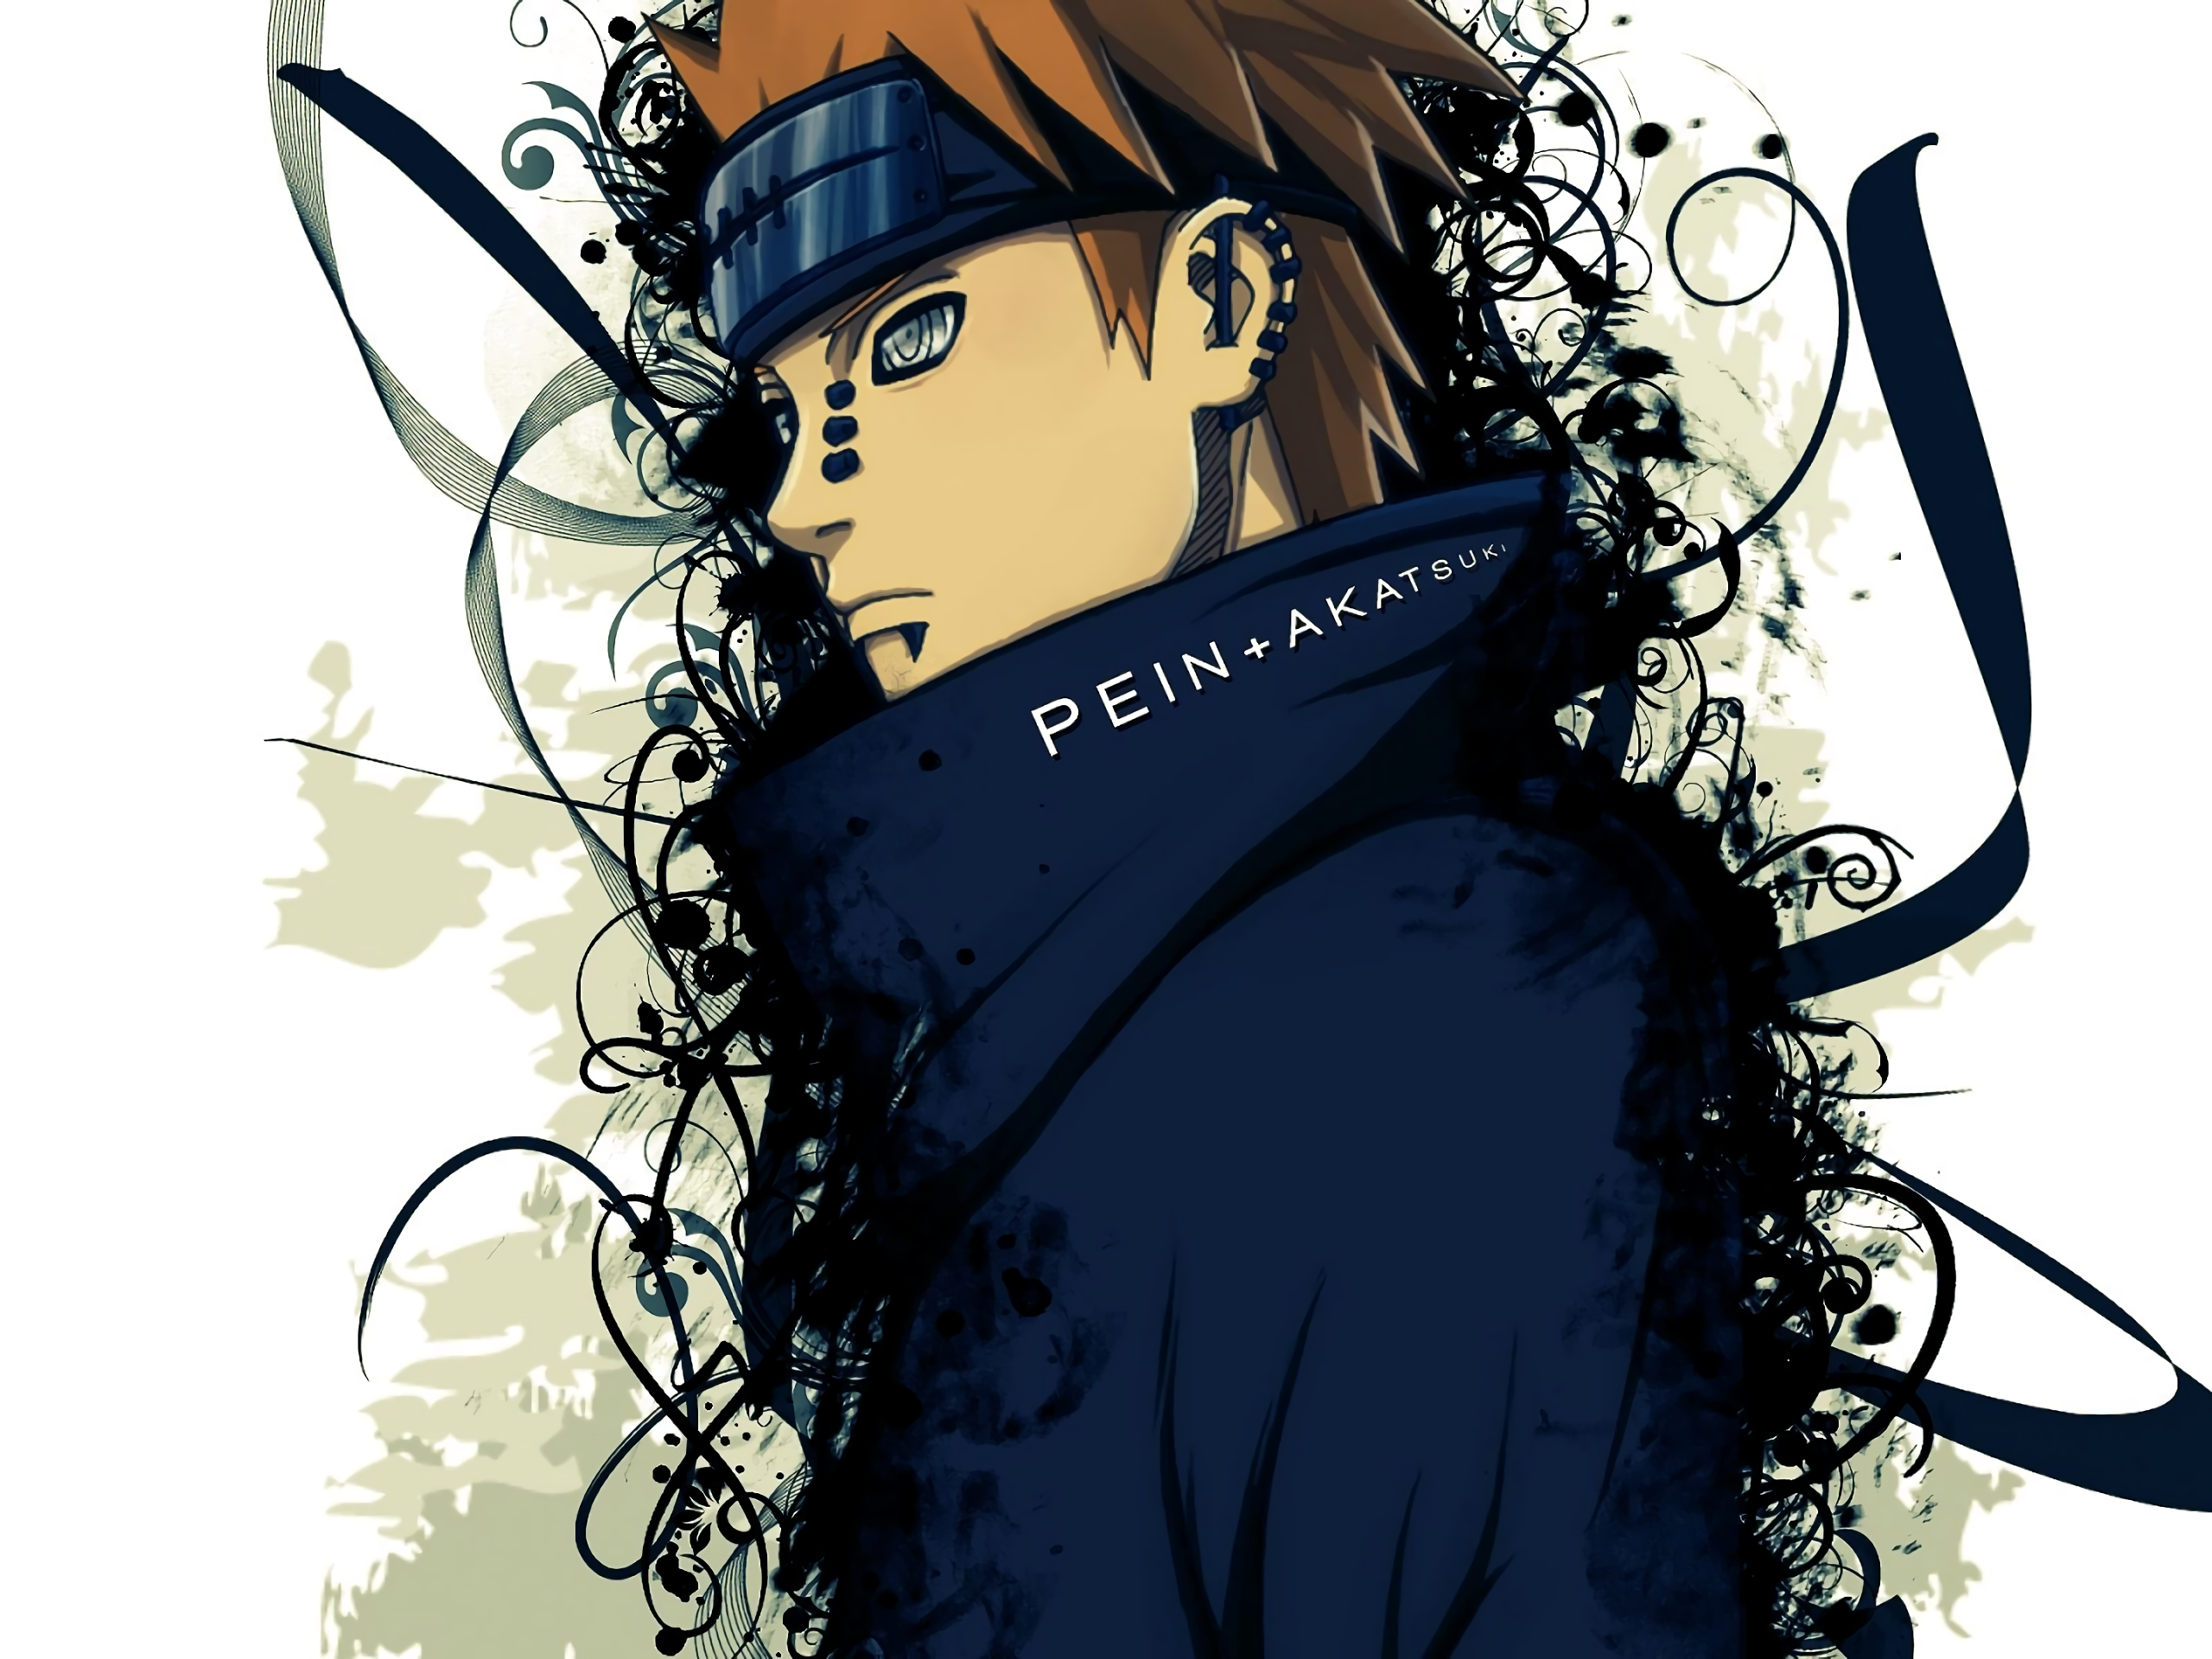 103 pain naruto hd wallpapers backgrounds wallpaper